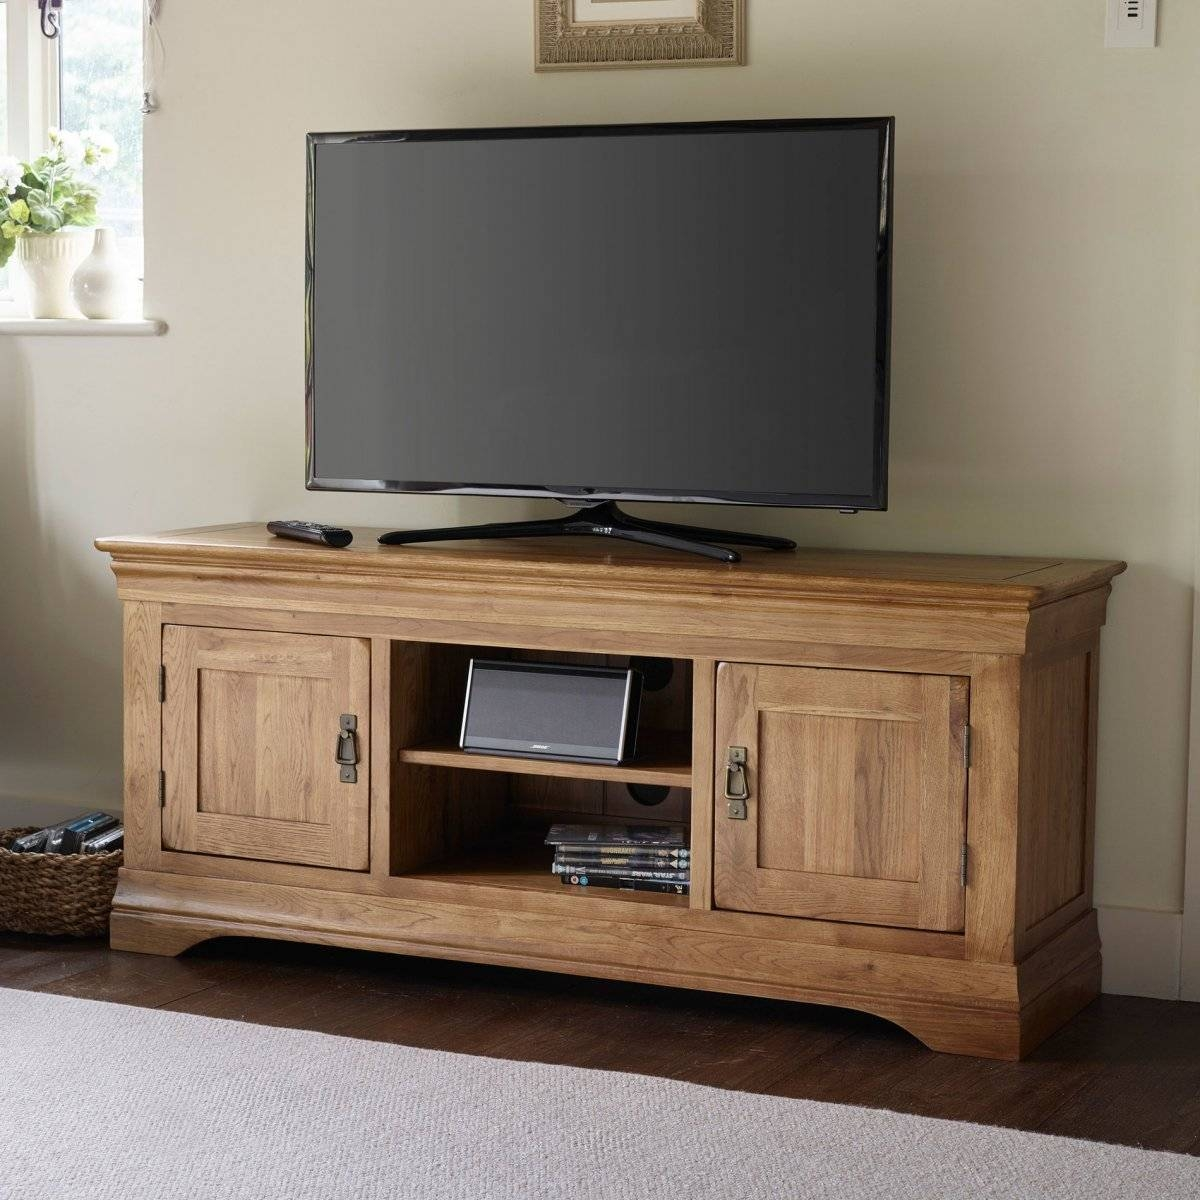 French Farmhouse Tv Cabinet In Solid Oak | Oak Furniture Land With Regard To French Tv Cabinets (View 14 of 15)